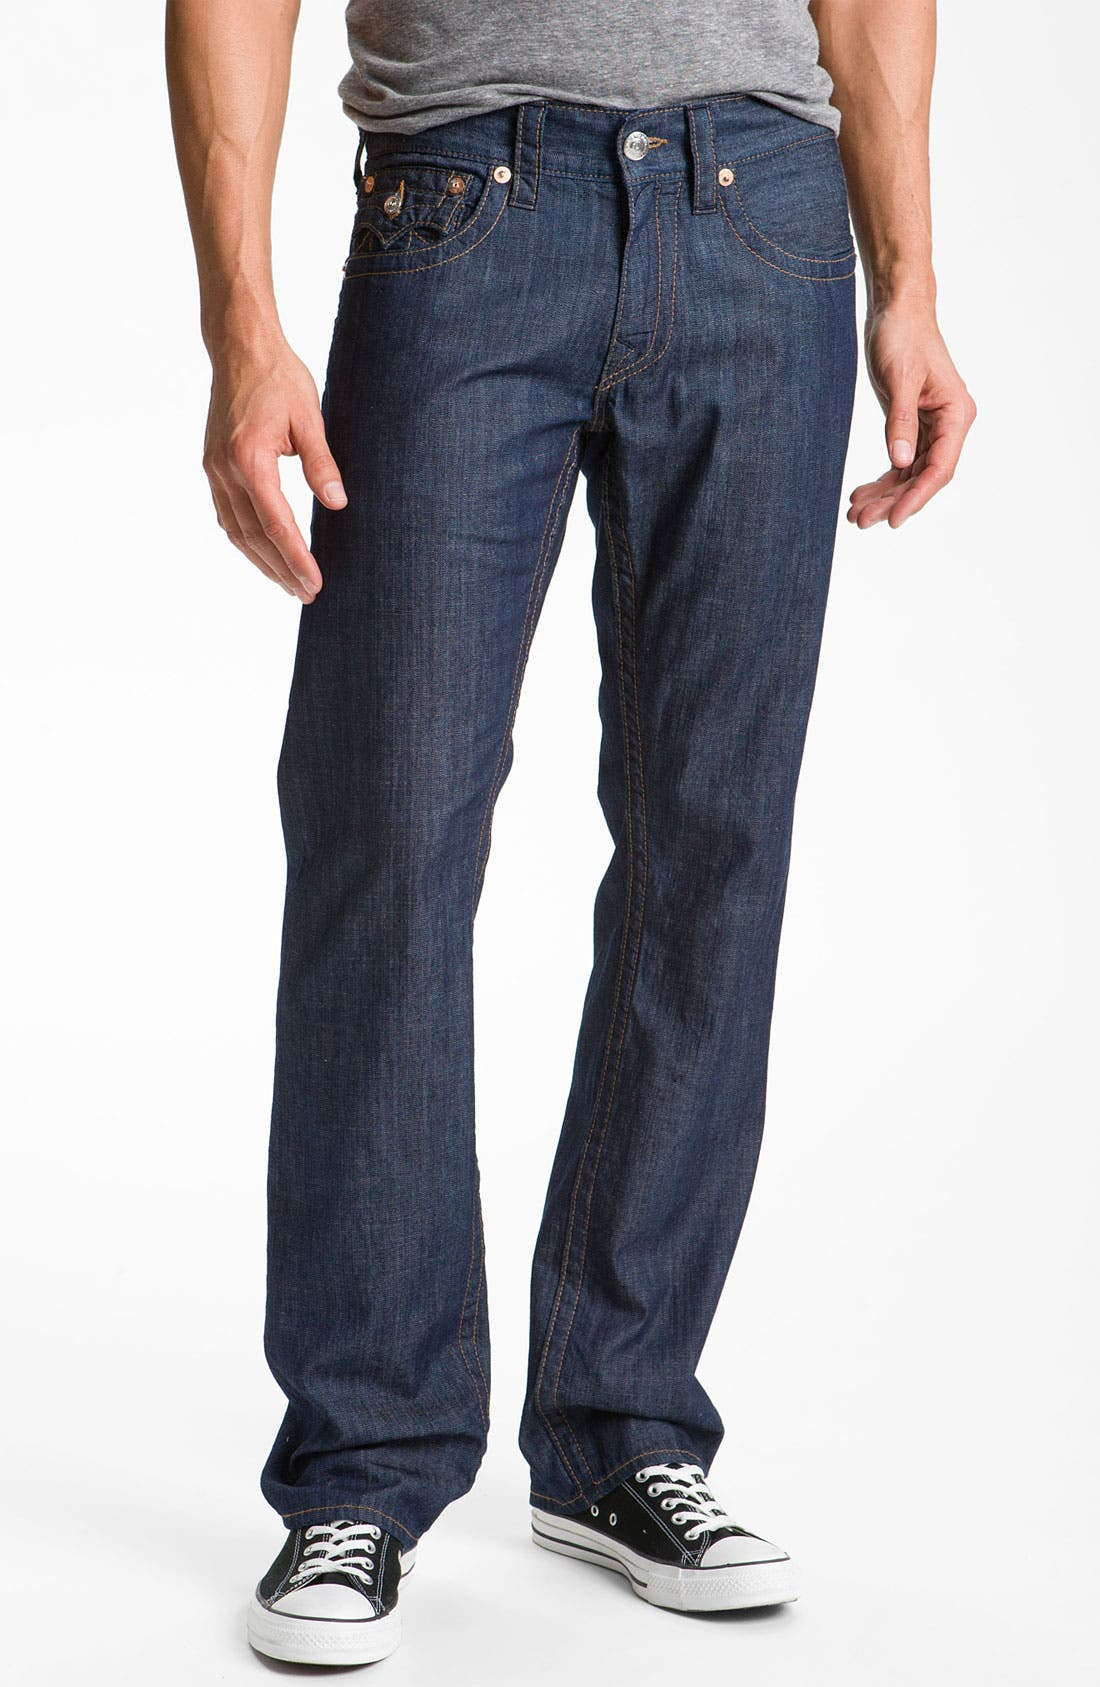 Alternate Image 2  - True Religion Brand Jeans 'Ricky' Straight Leg Jeans (2S Bodyrinse)